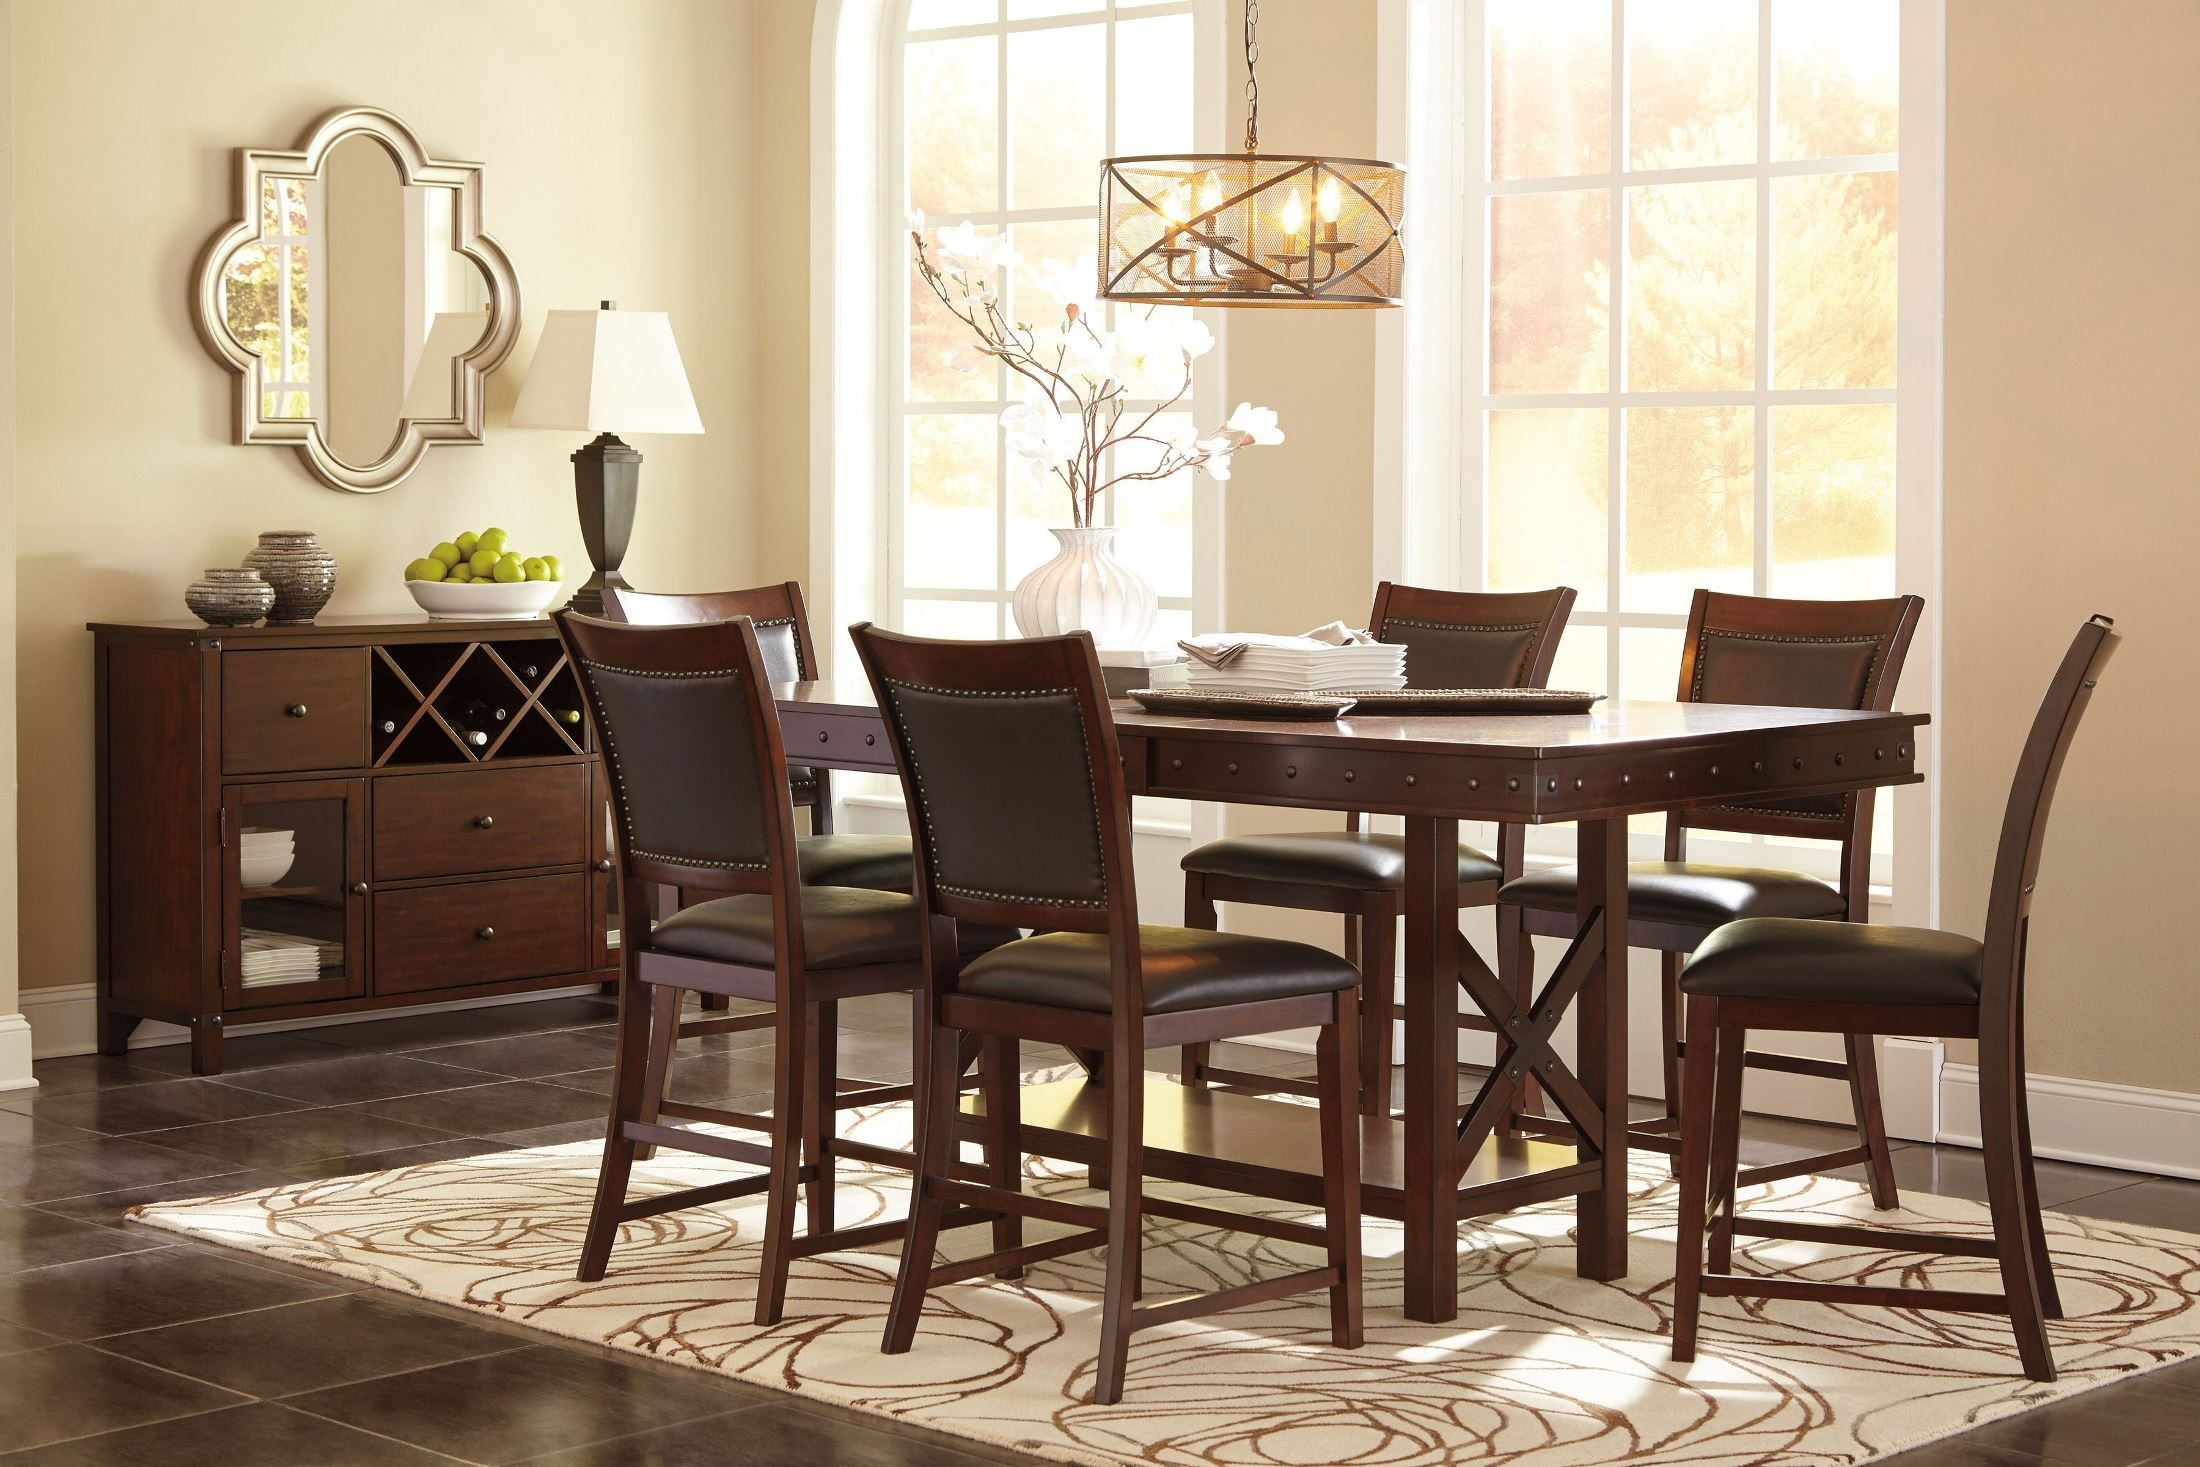 Collenburg brown extendable counter height dining room set for Brown dining room set